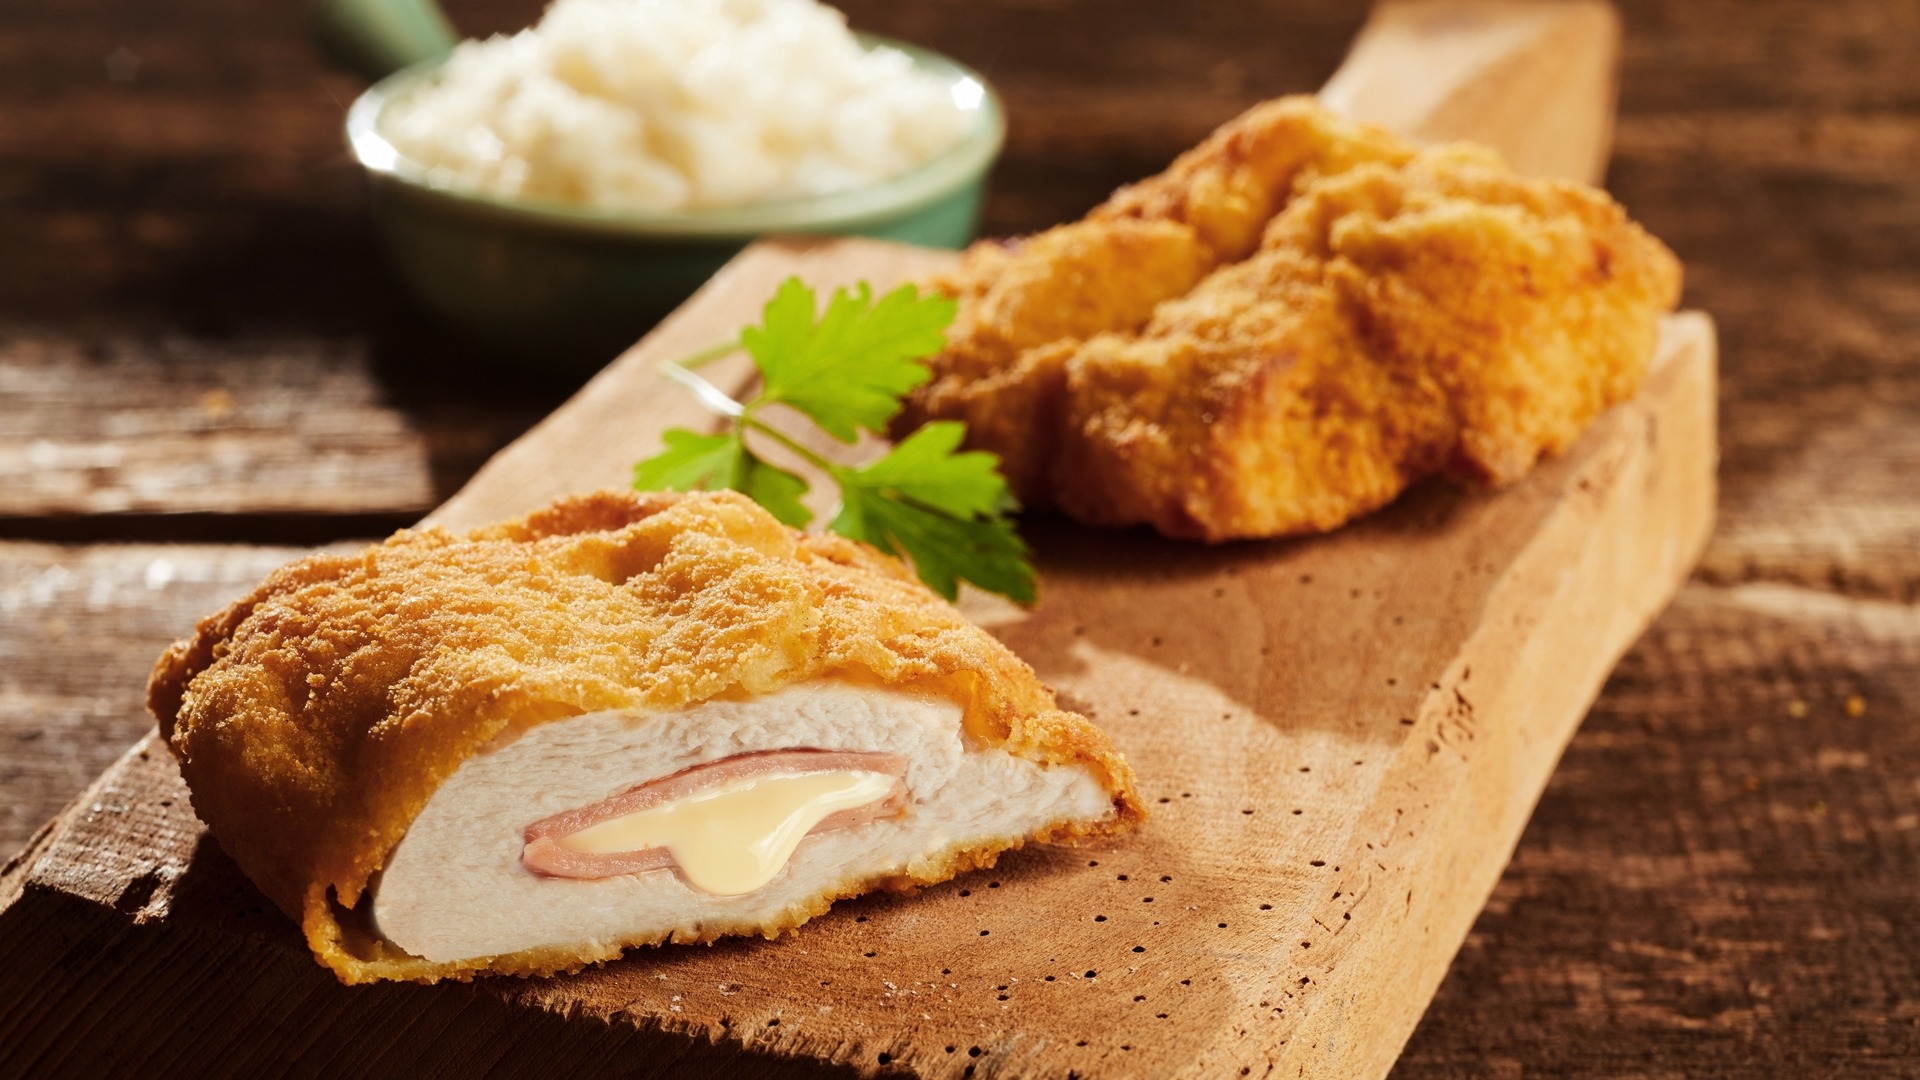 Cordon Bleu,chicken